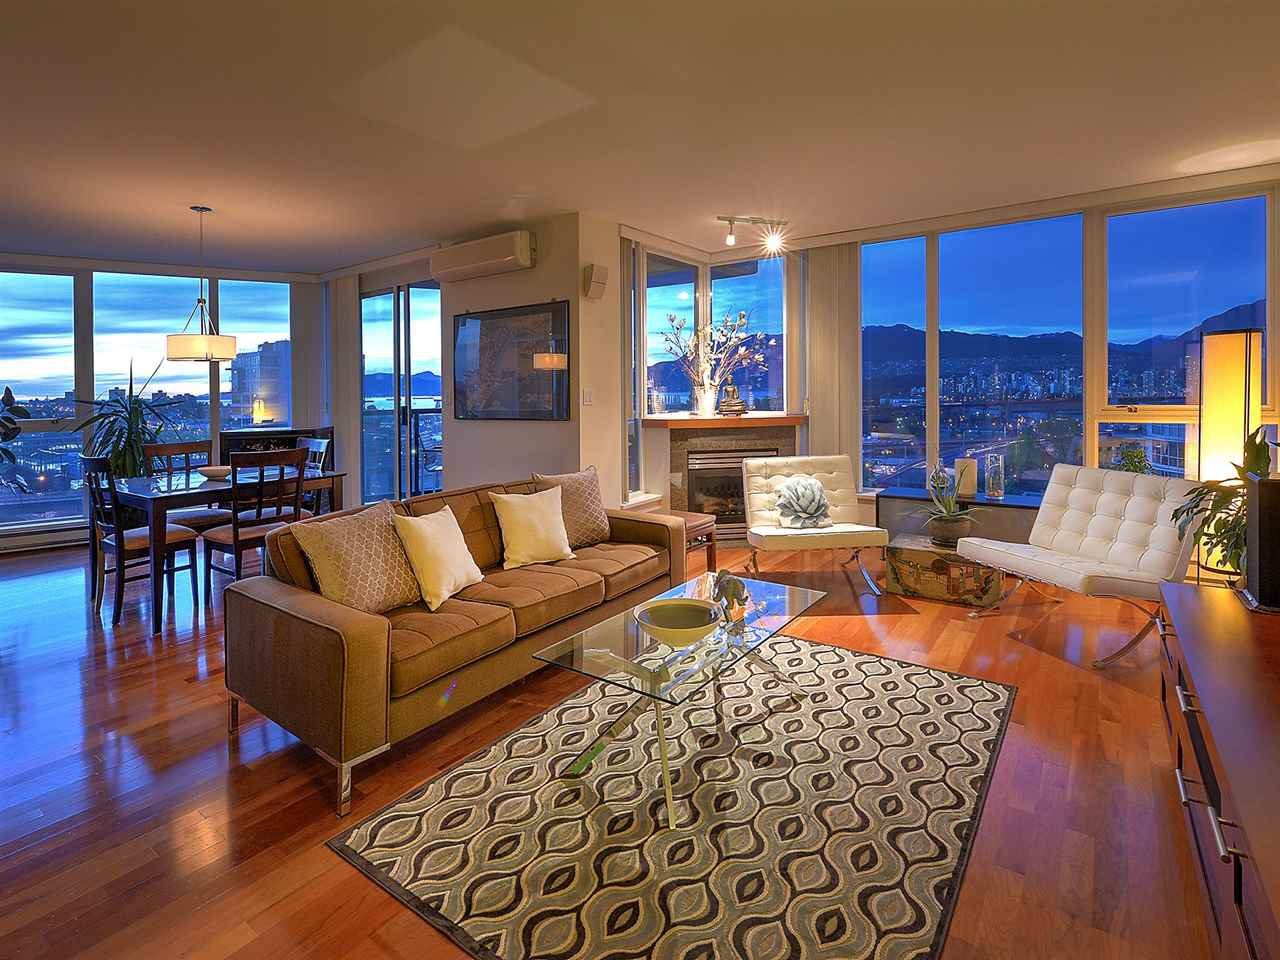 Main Photo: 1004 1483 W 7TH AVENUE in Vancouver: Fairview VW Condo for sale (Vancouver West)  : MLS®# R2055210